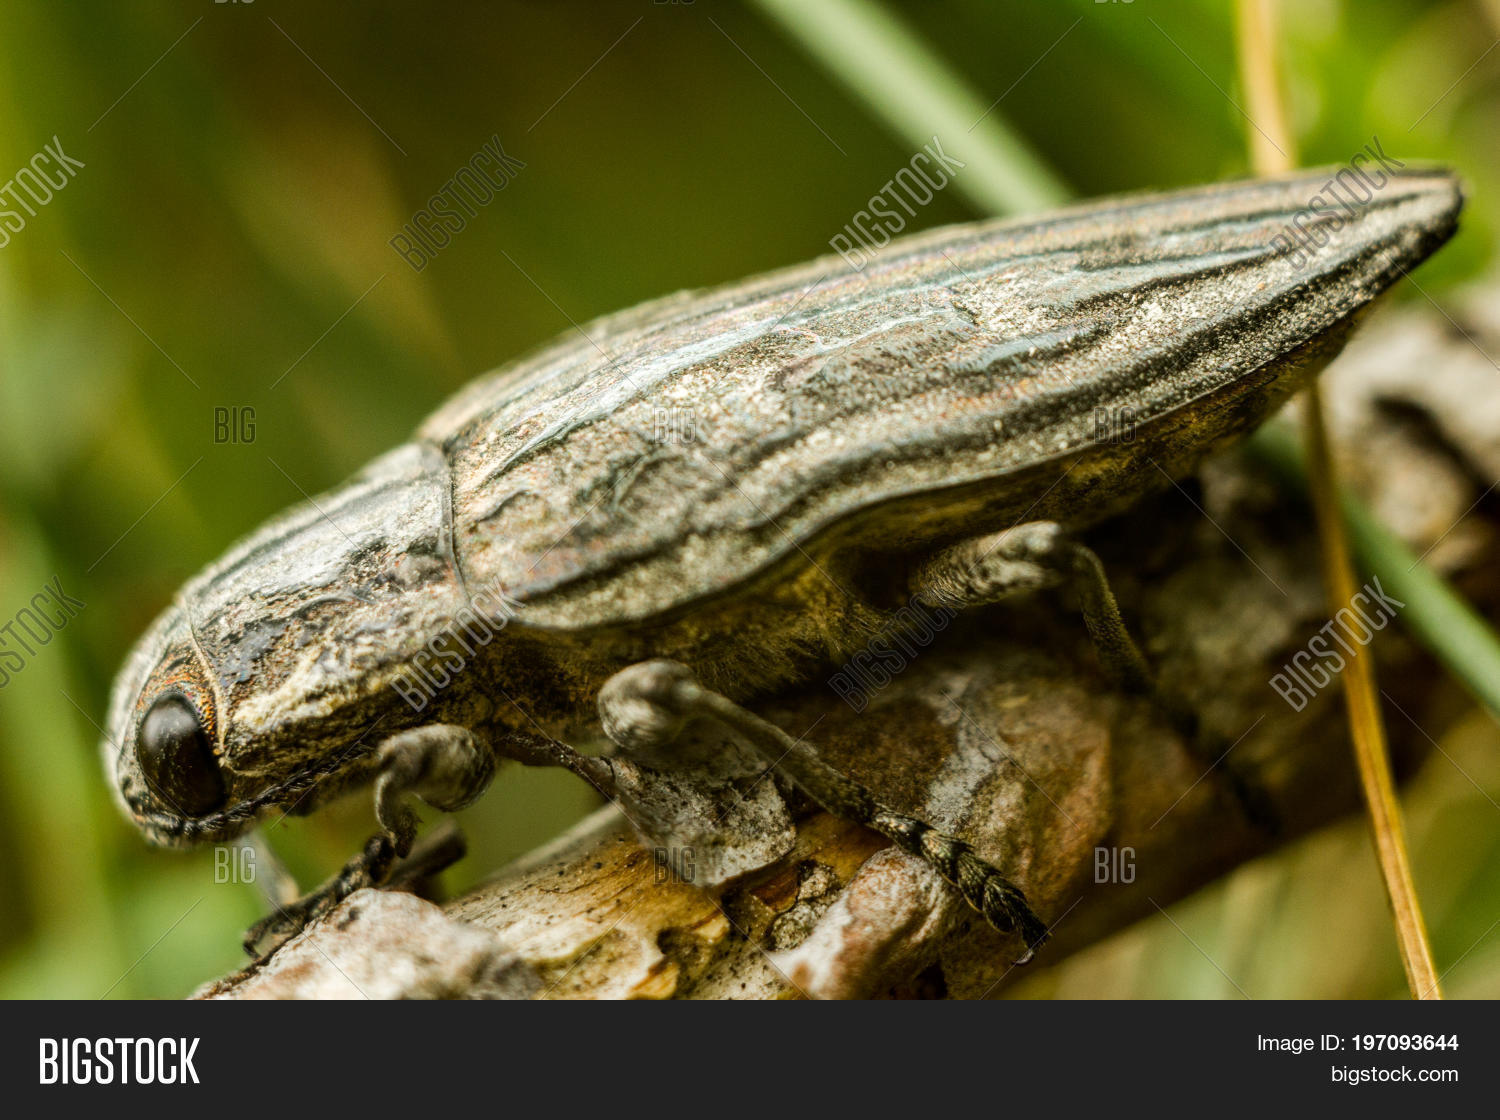 Pine borer chalcophora mariana image photo bigstock the pine borer chalcophora mariana a large gray beetle with a pattern on sciox Images